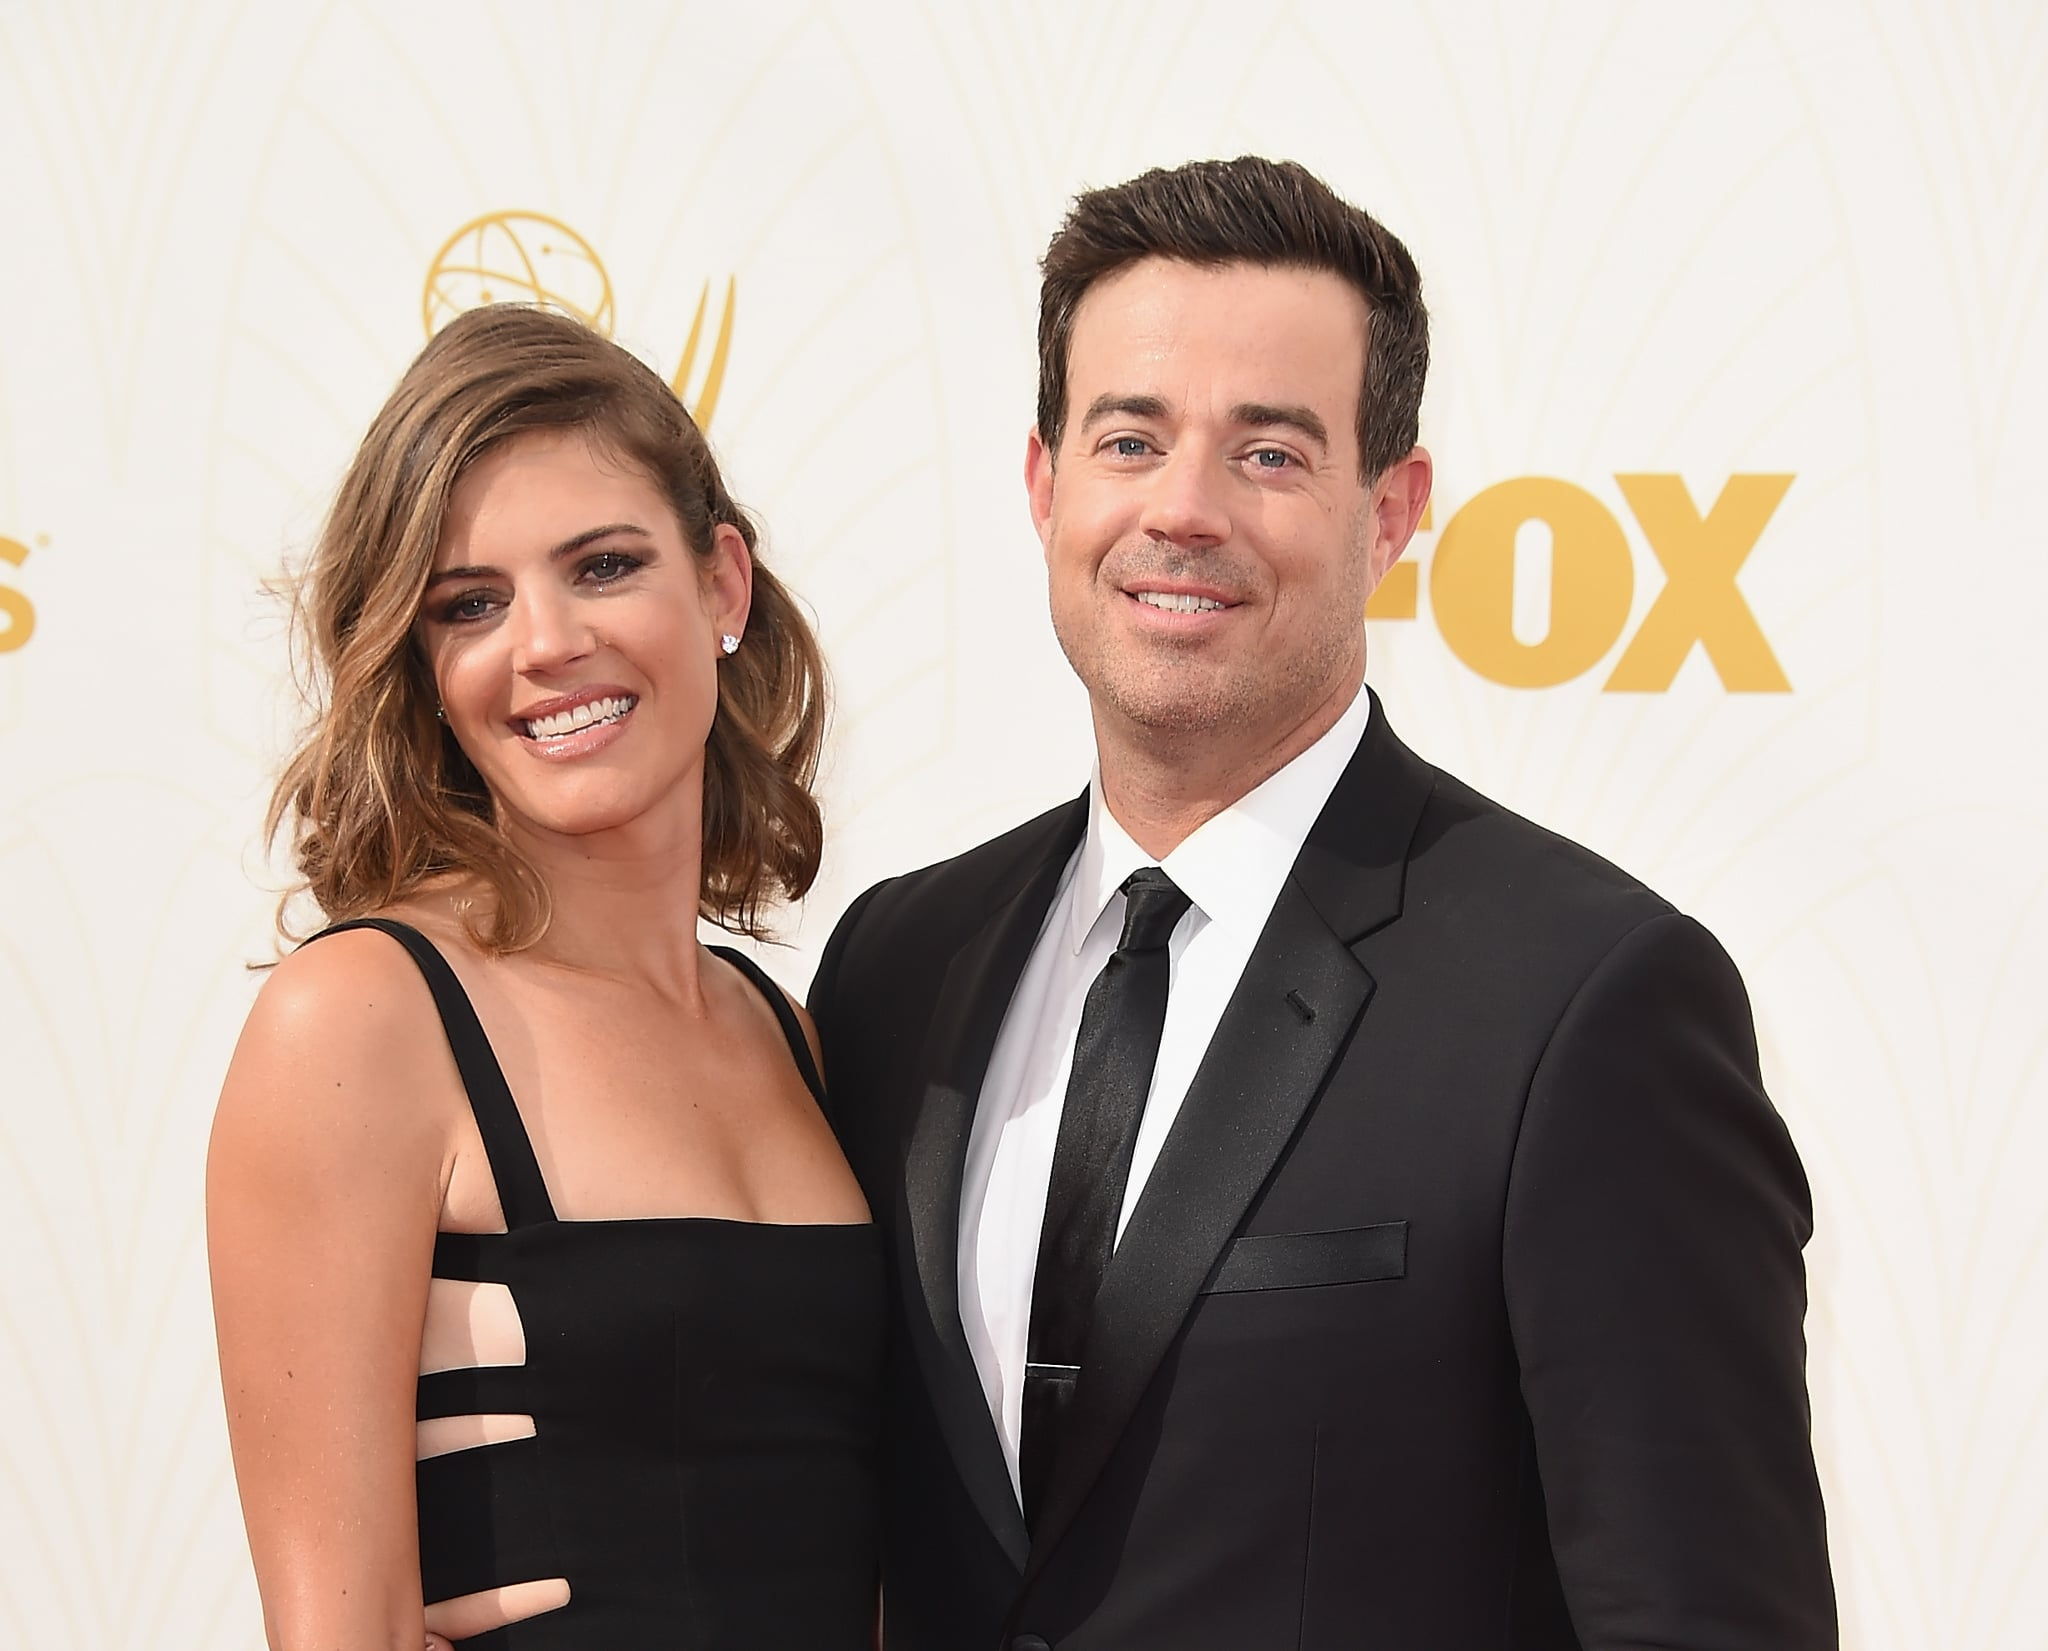 LOS ANGELES, CA - SEPTEMBER 20:  Siri Pinter (L) and TV personality Carson Daly attend the 67th Annual Primetime Emmy Awards at Microsoft Theatre on September 20, 2015 in Los Angeles, California.  (Photo by Steve Granitz/WireImage)